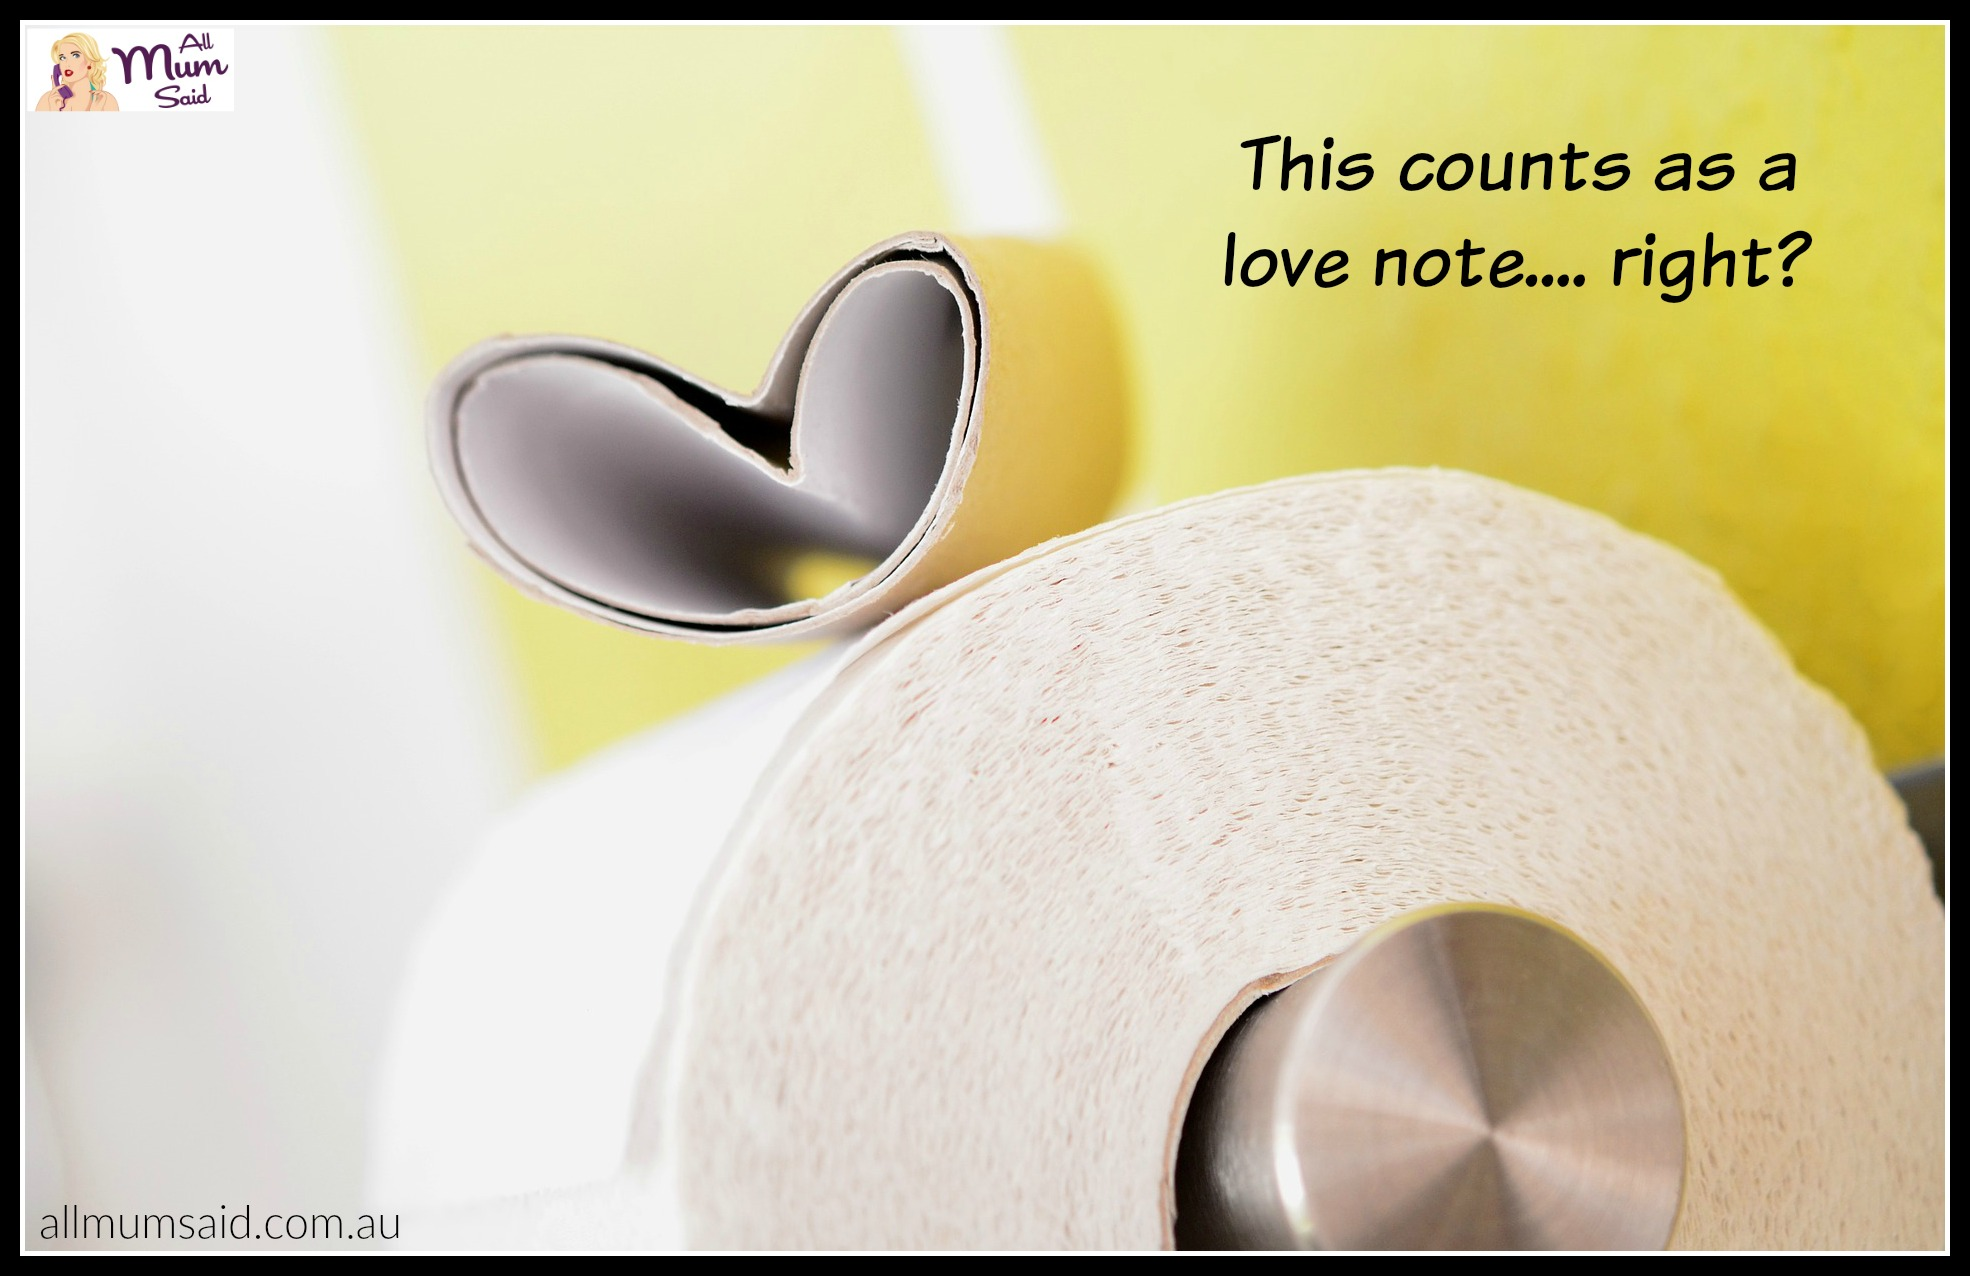 What To Expect From Your Toilet When You Live With Males - funny toilet story